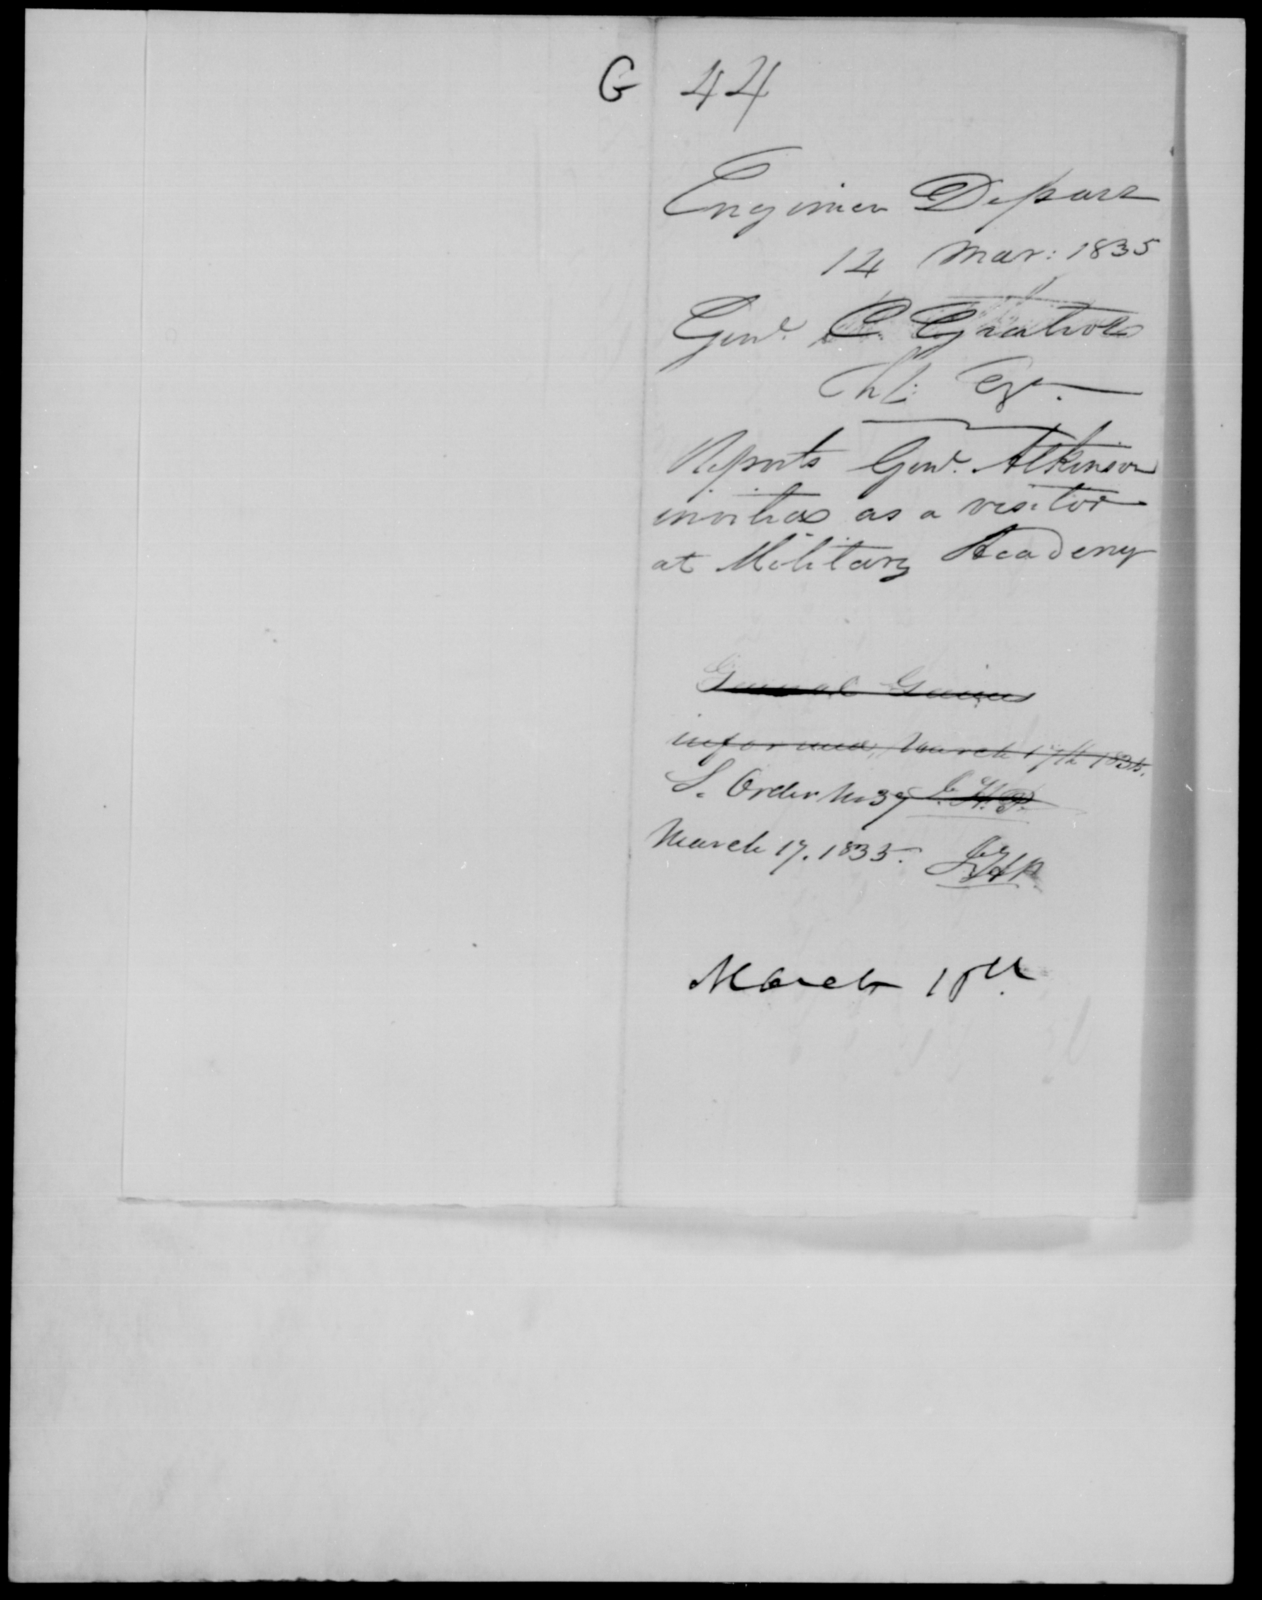 Gratiot, C - State: [Blank] - Year: 1835 - File Number: G44